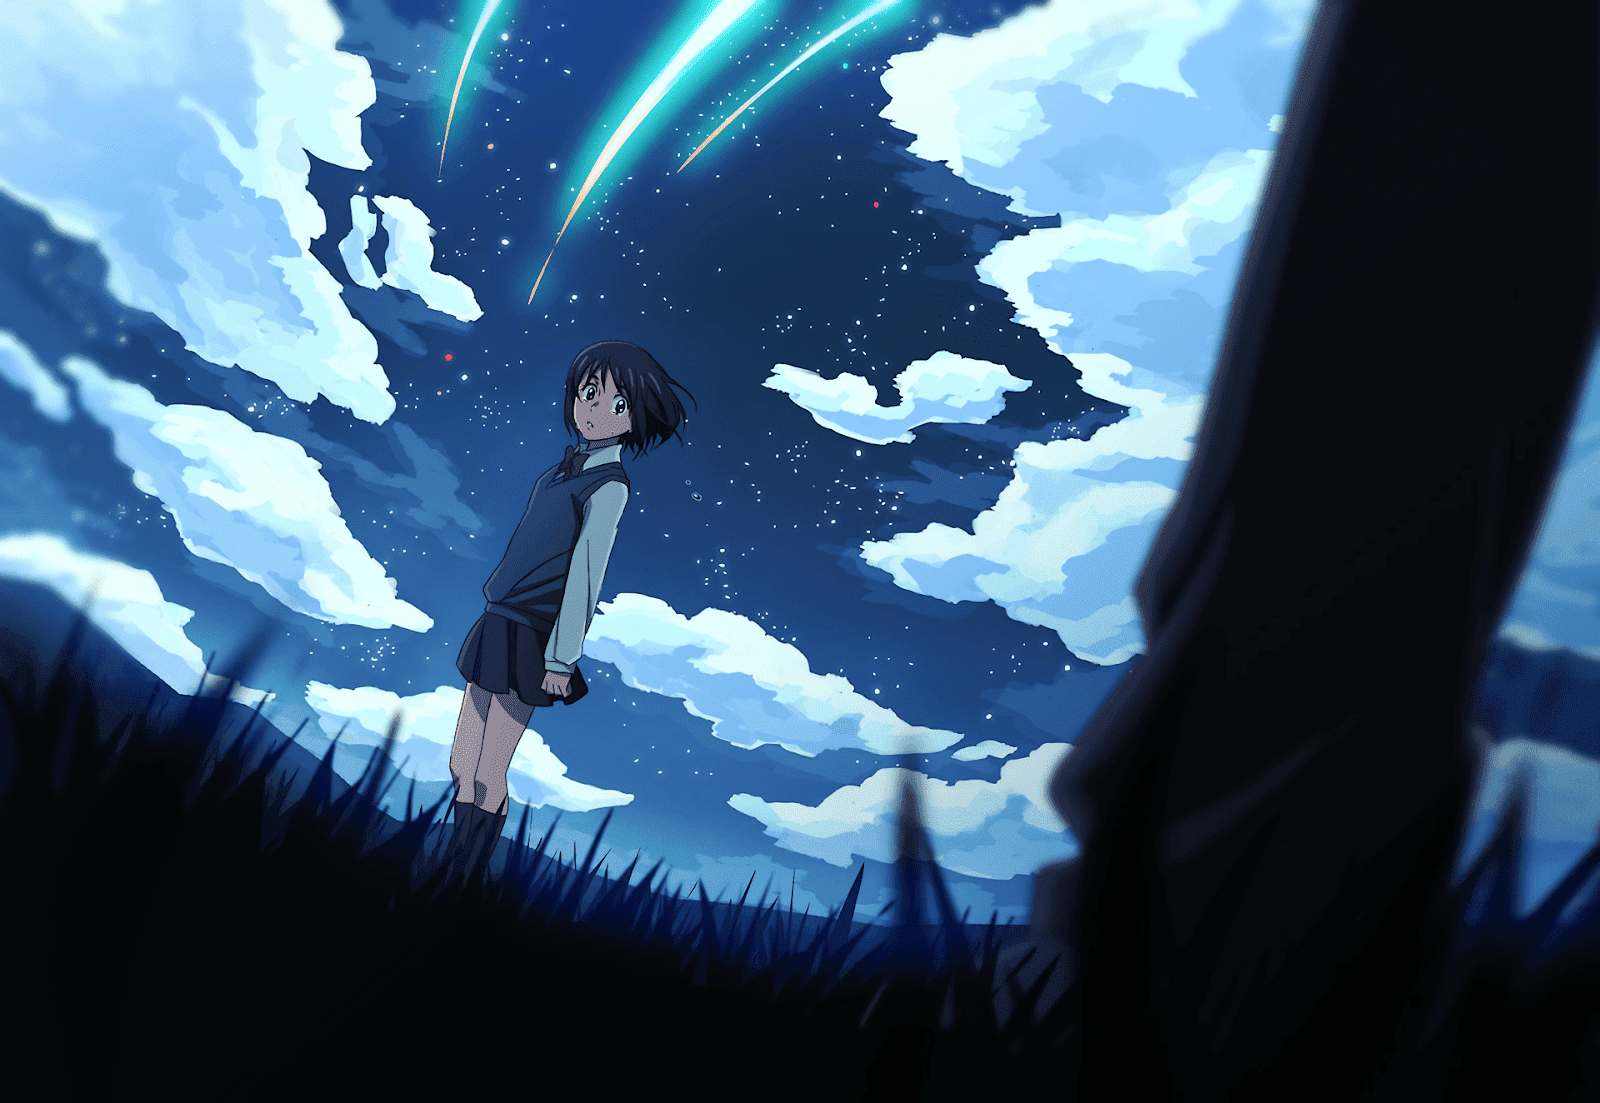 AowVN%2B%252842%2529 - [ Hình Nền ] Anime Your Name. - Kimi no Nawa full HD cực đẹp | Anime Wallpaper